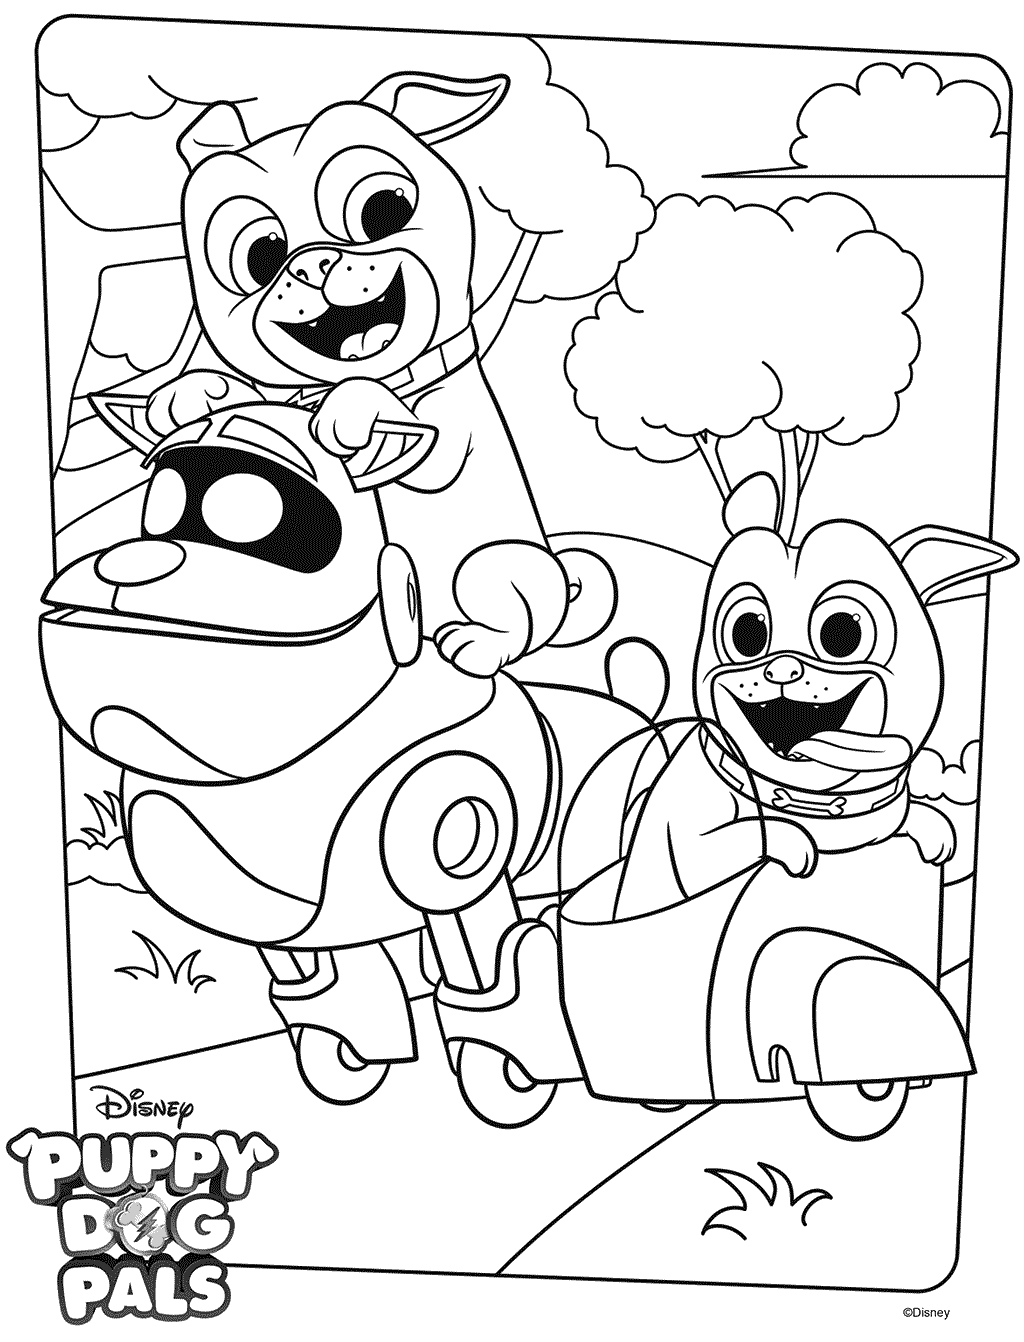 Puppy Dog Pals Coloring Pages - Best Coloring Pages For ...